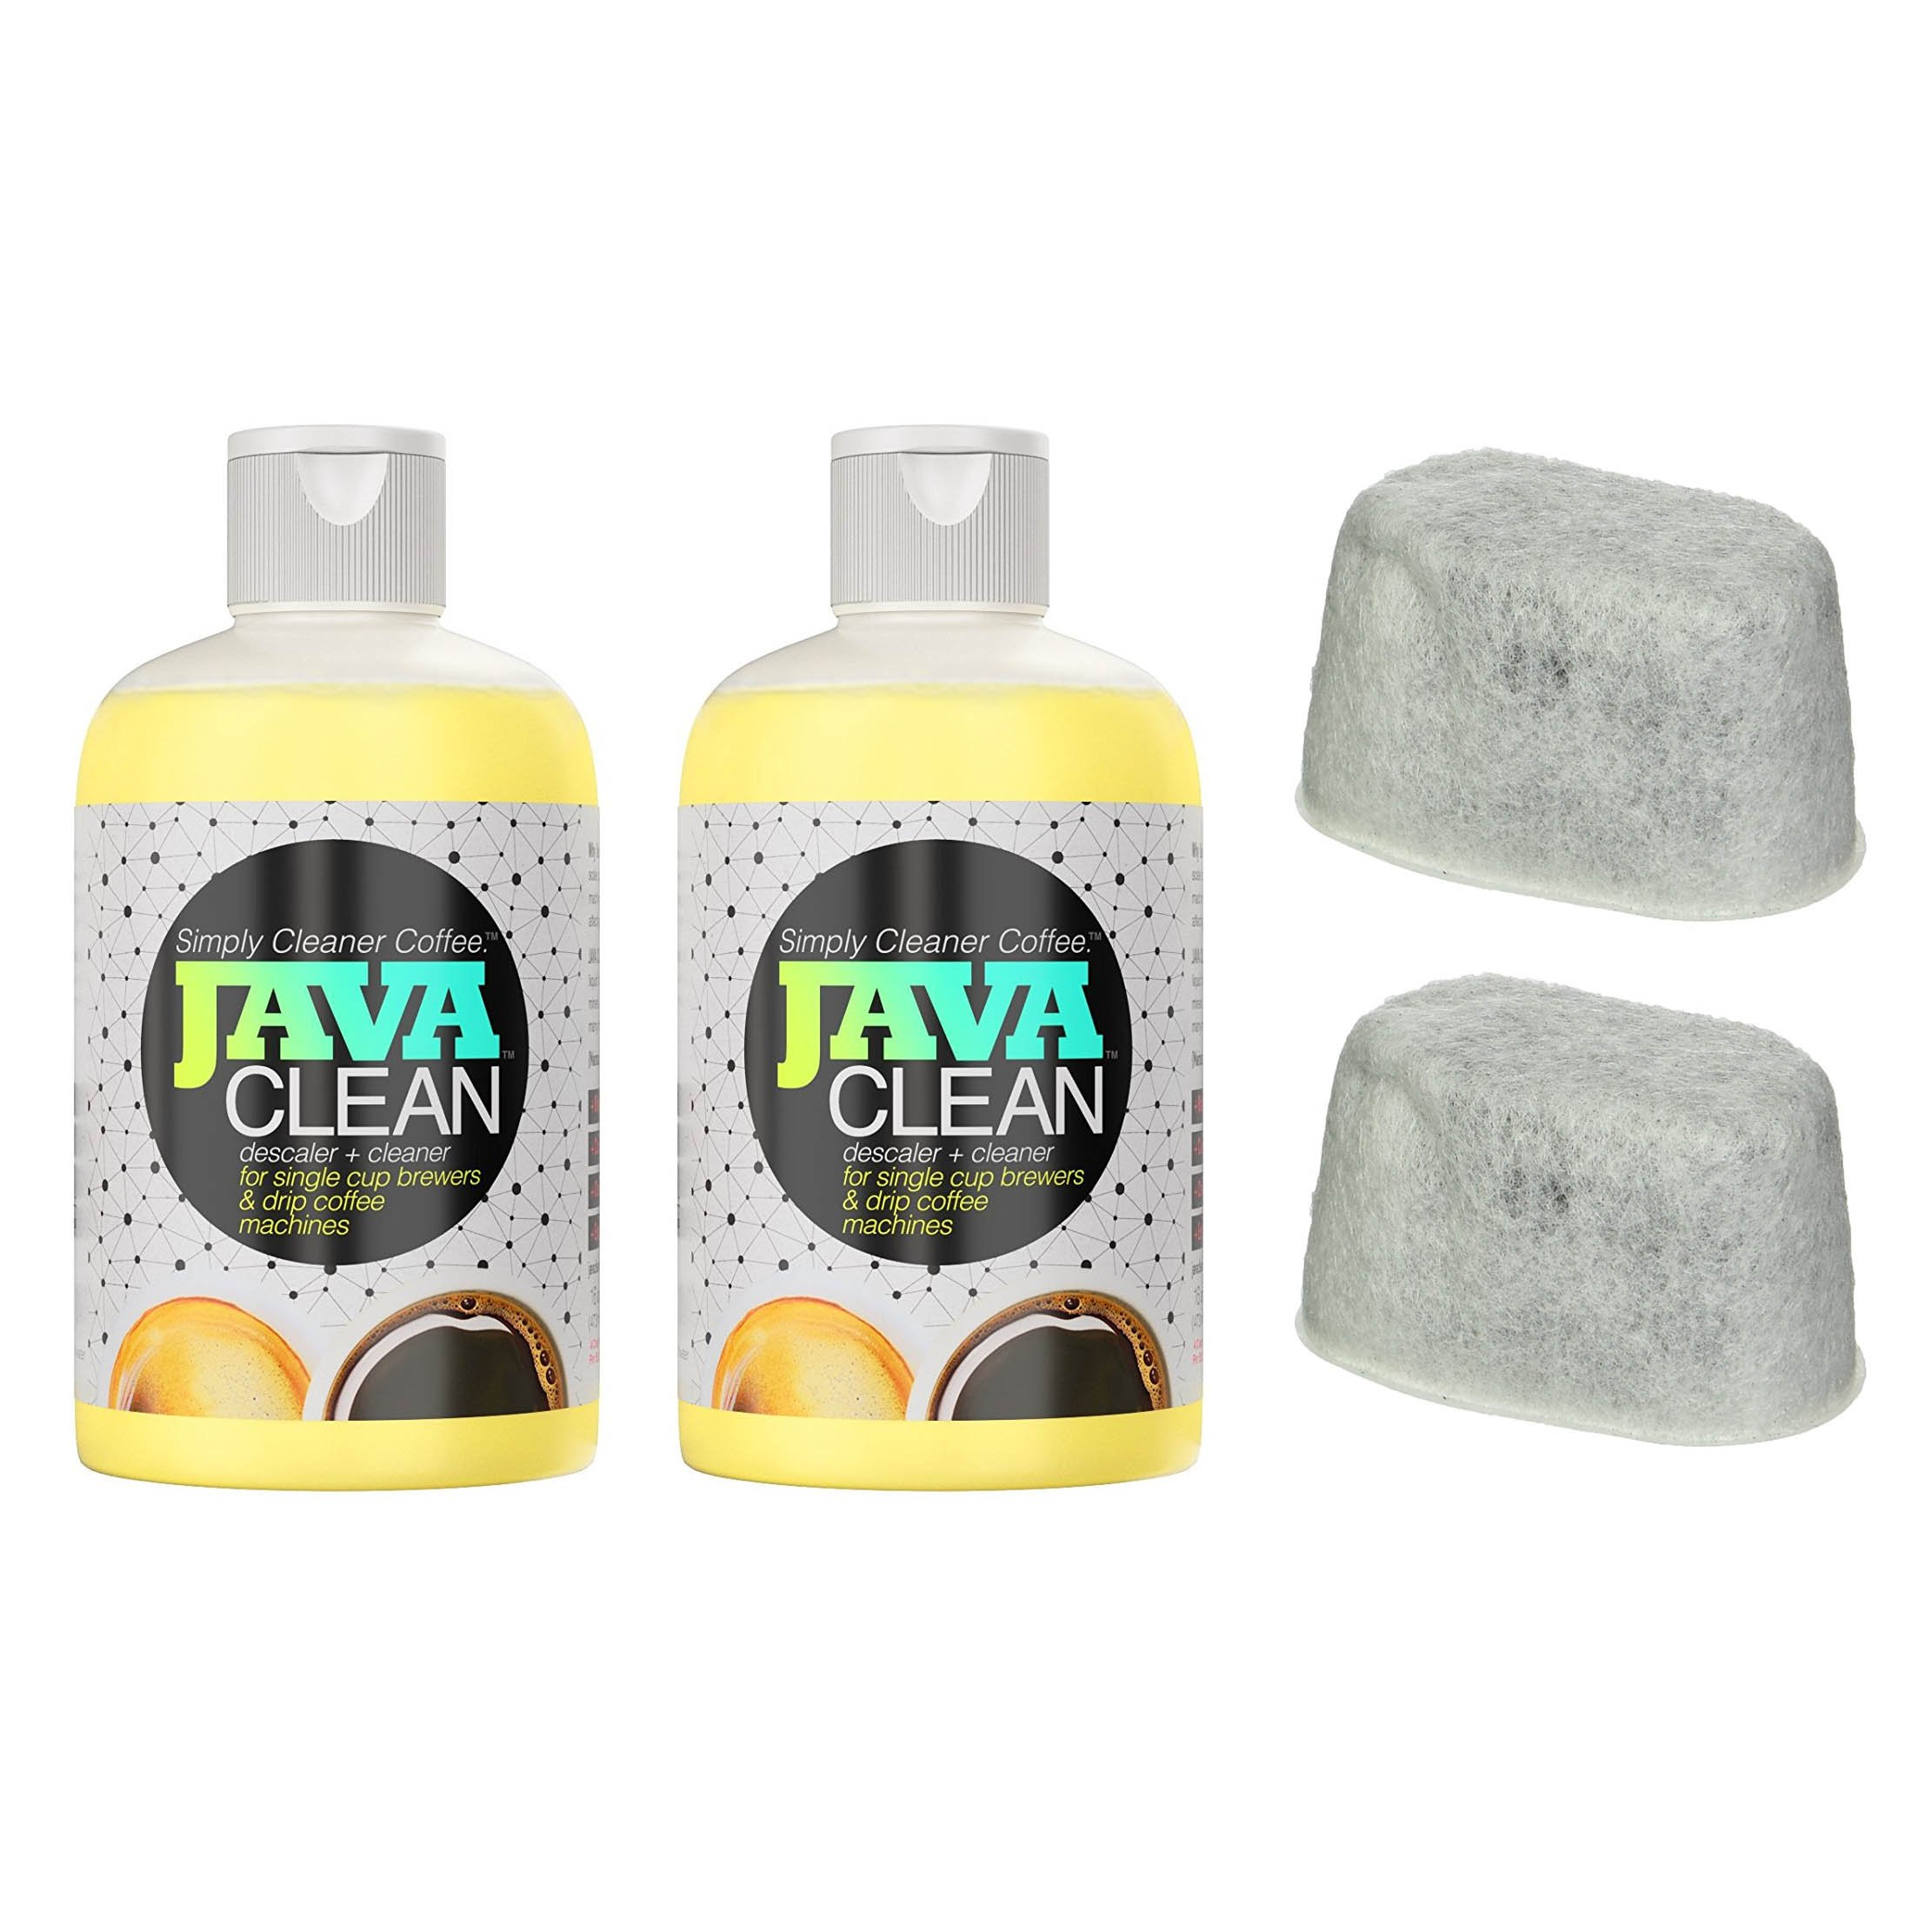 JAVA CLEAN Universal Coffee Cleaner Bundle - (Two 16oz Bottles + BONUS 2 Keurig Filters) Biodegradable Concentrated Coffee Descaling Formula made in USA - Coffee Machine Cleaner, Coffee Descaler